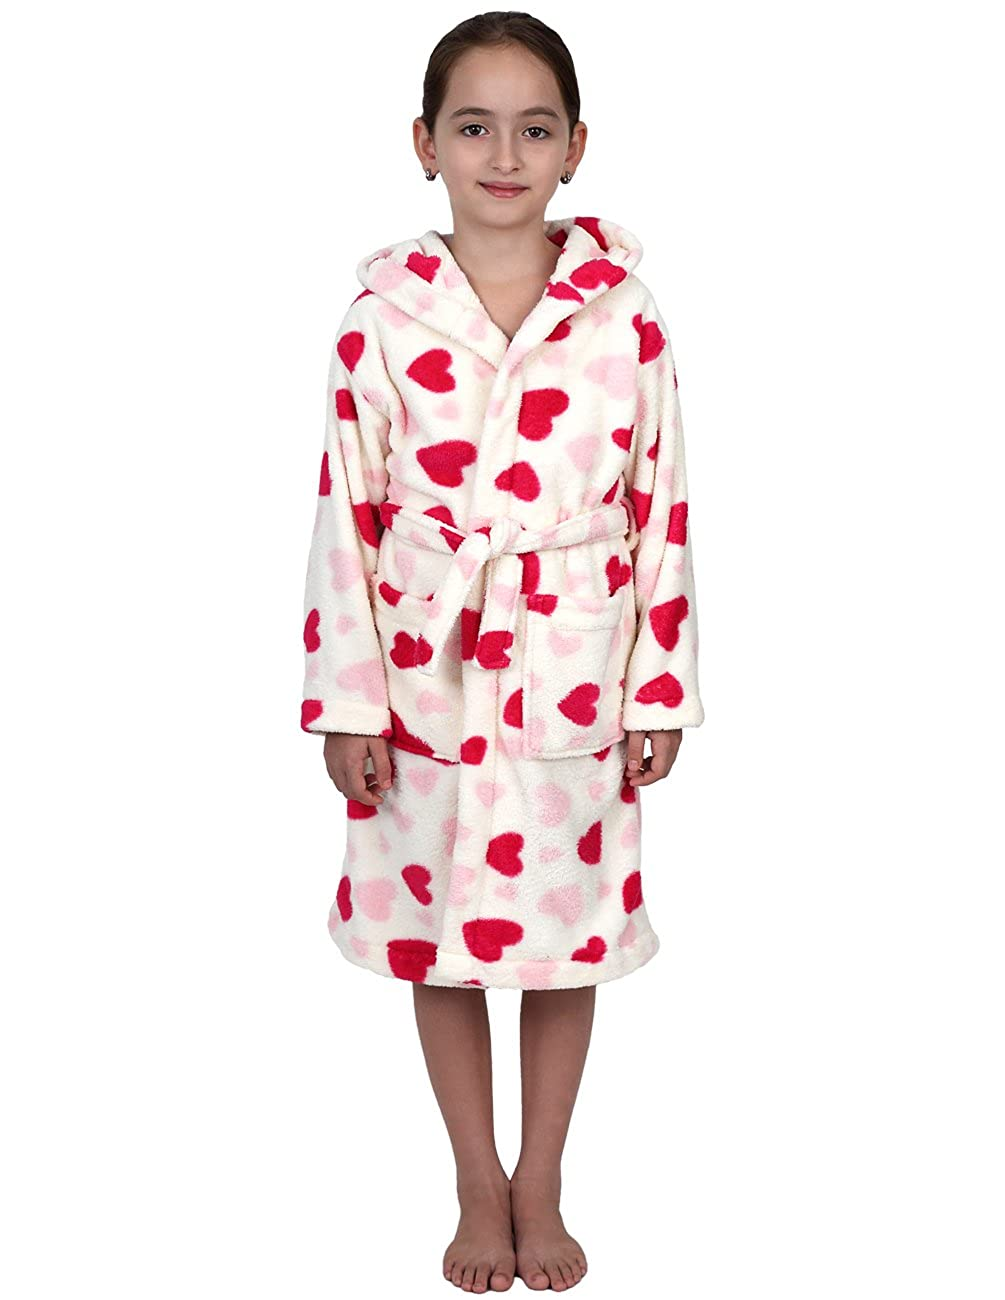 Amazon.com  TowelSelections Girls Robe ec7eee49d